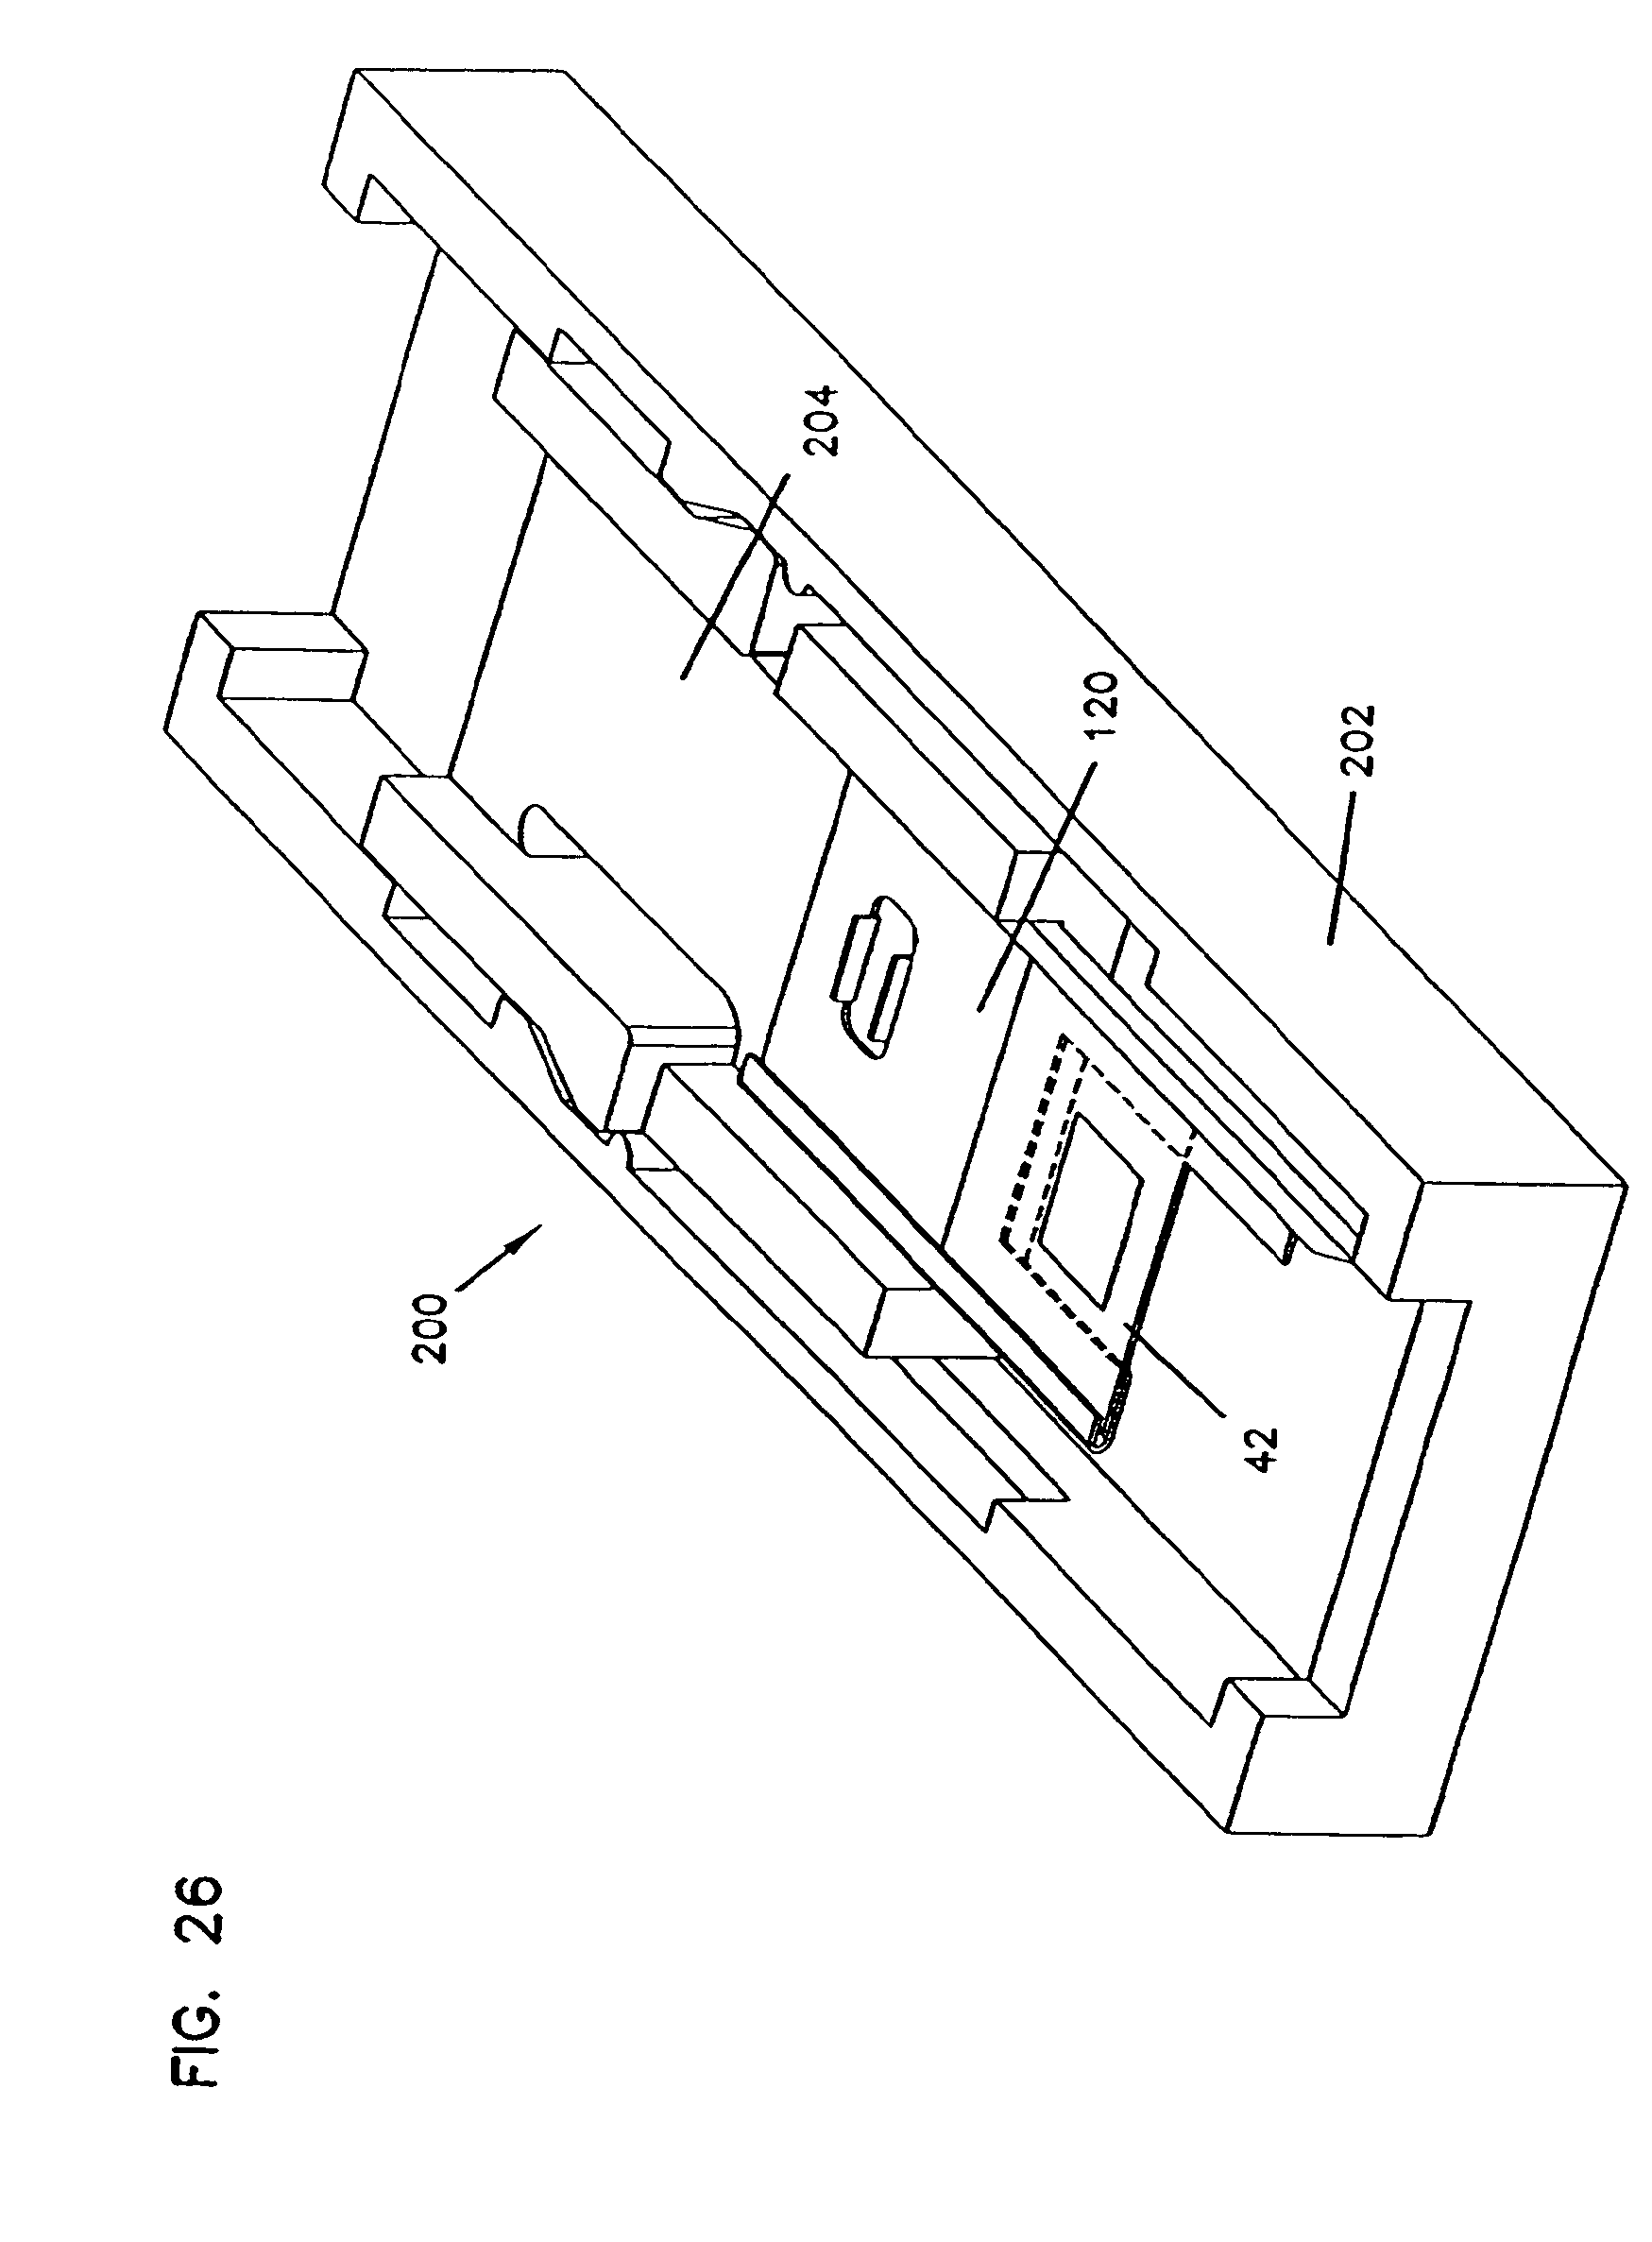 Us8666469b2 analyte monitoring device and methods of use patents